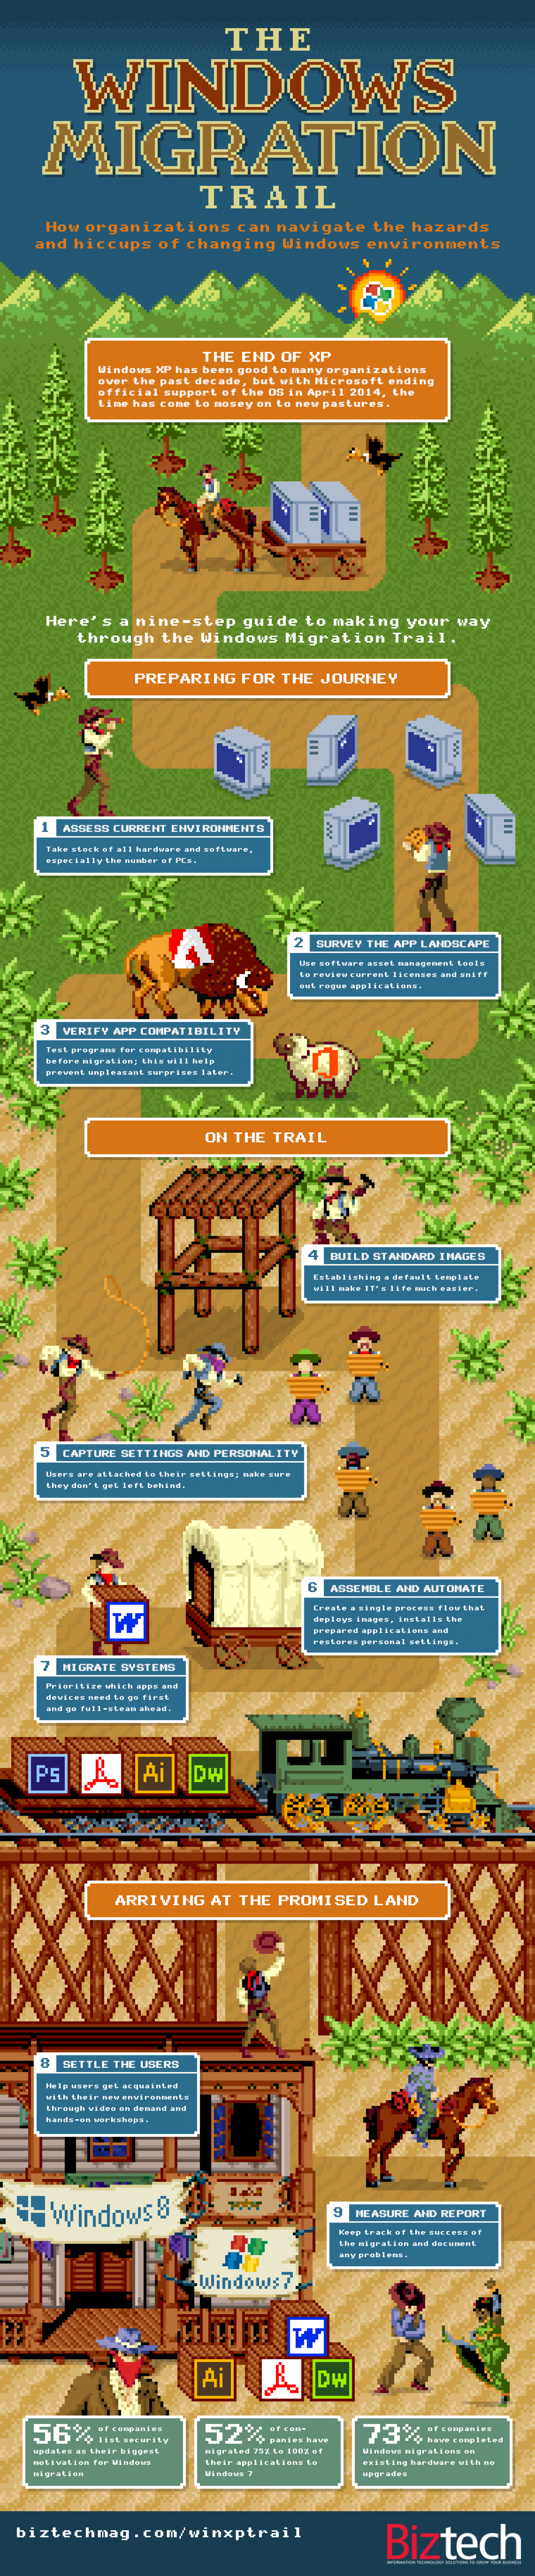 Navigating the Windows Migration Trail Infographic